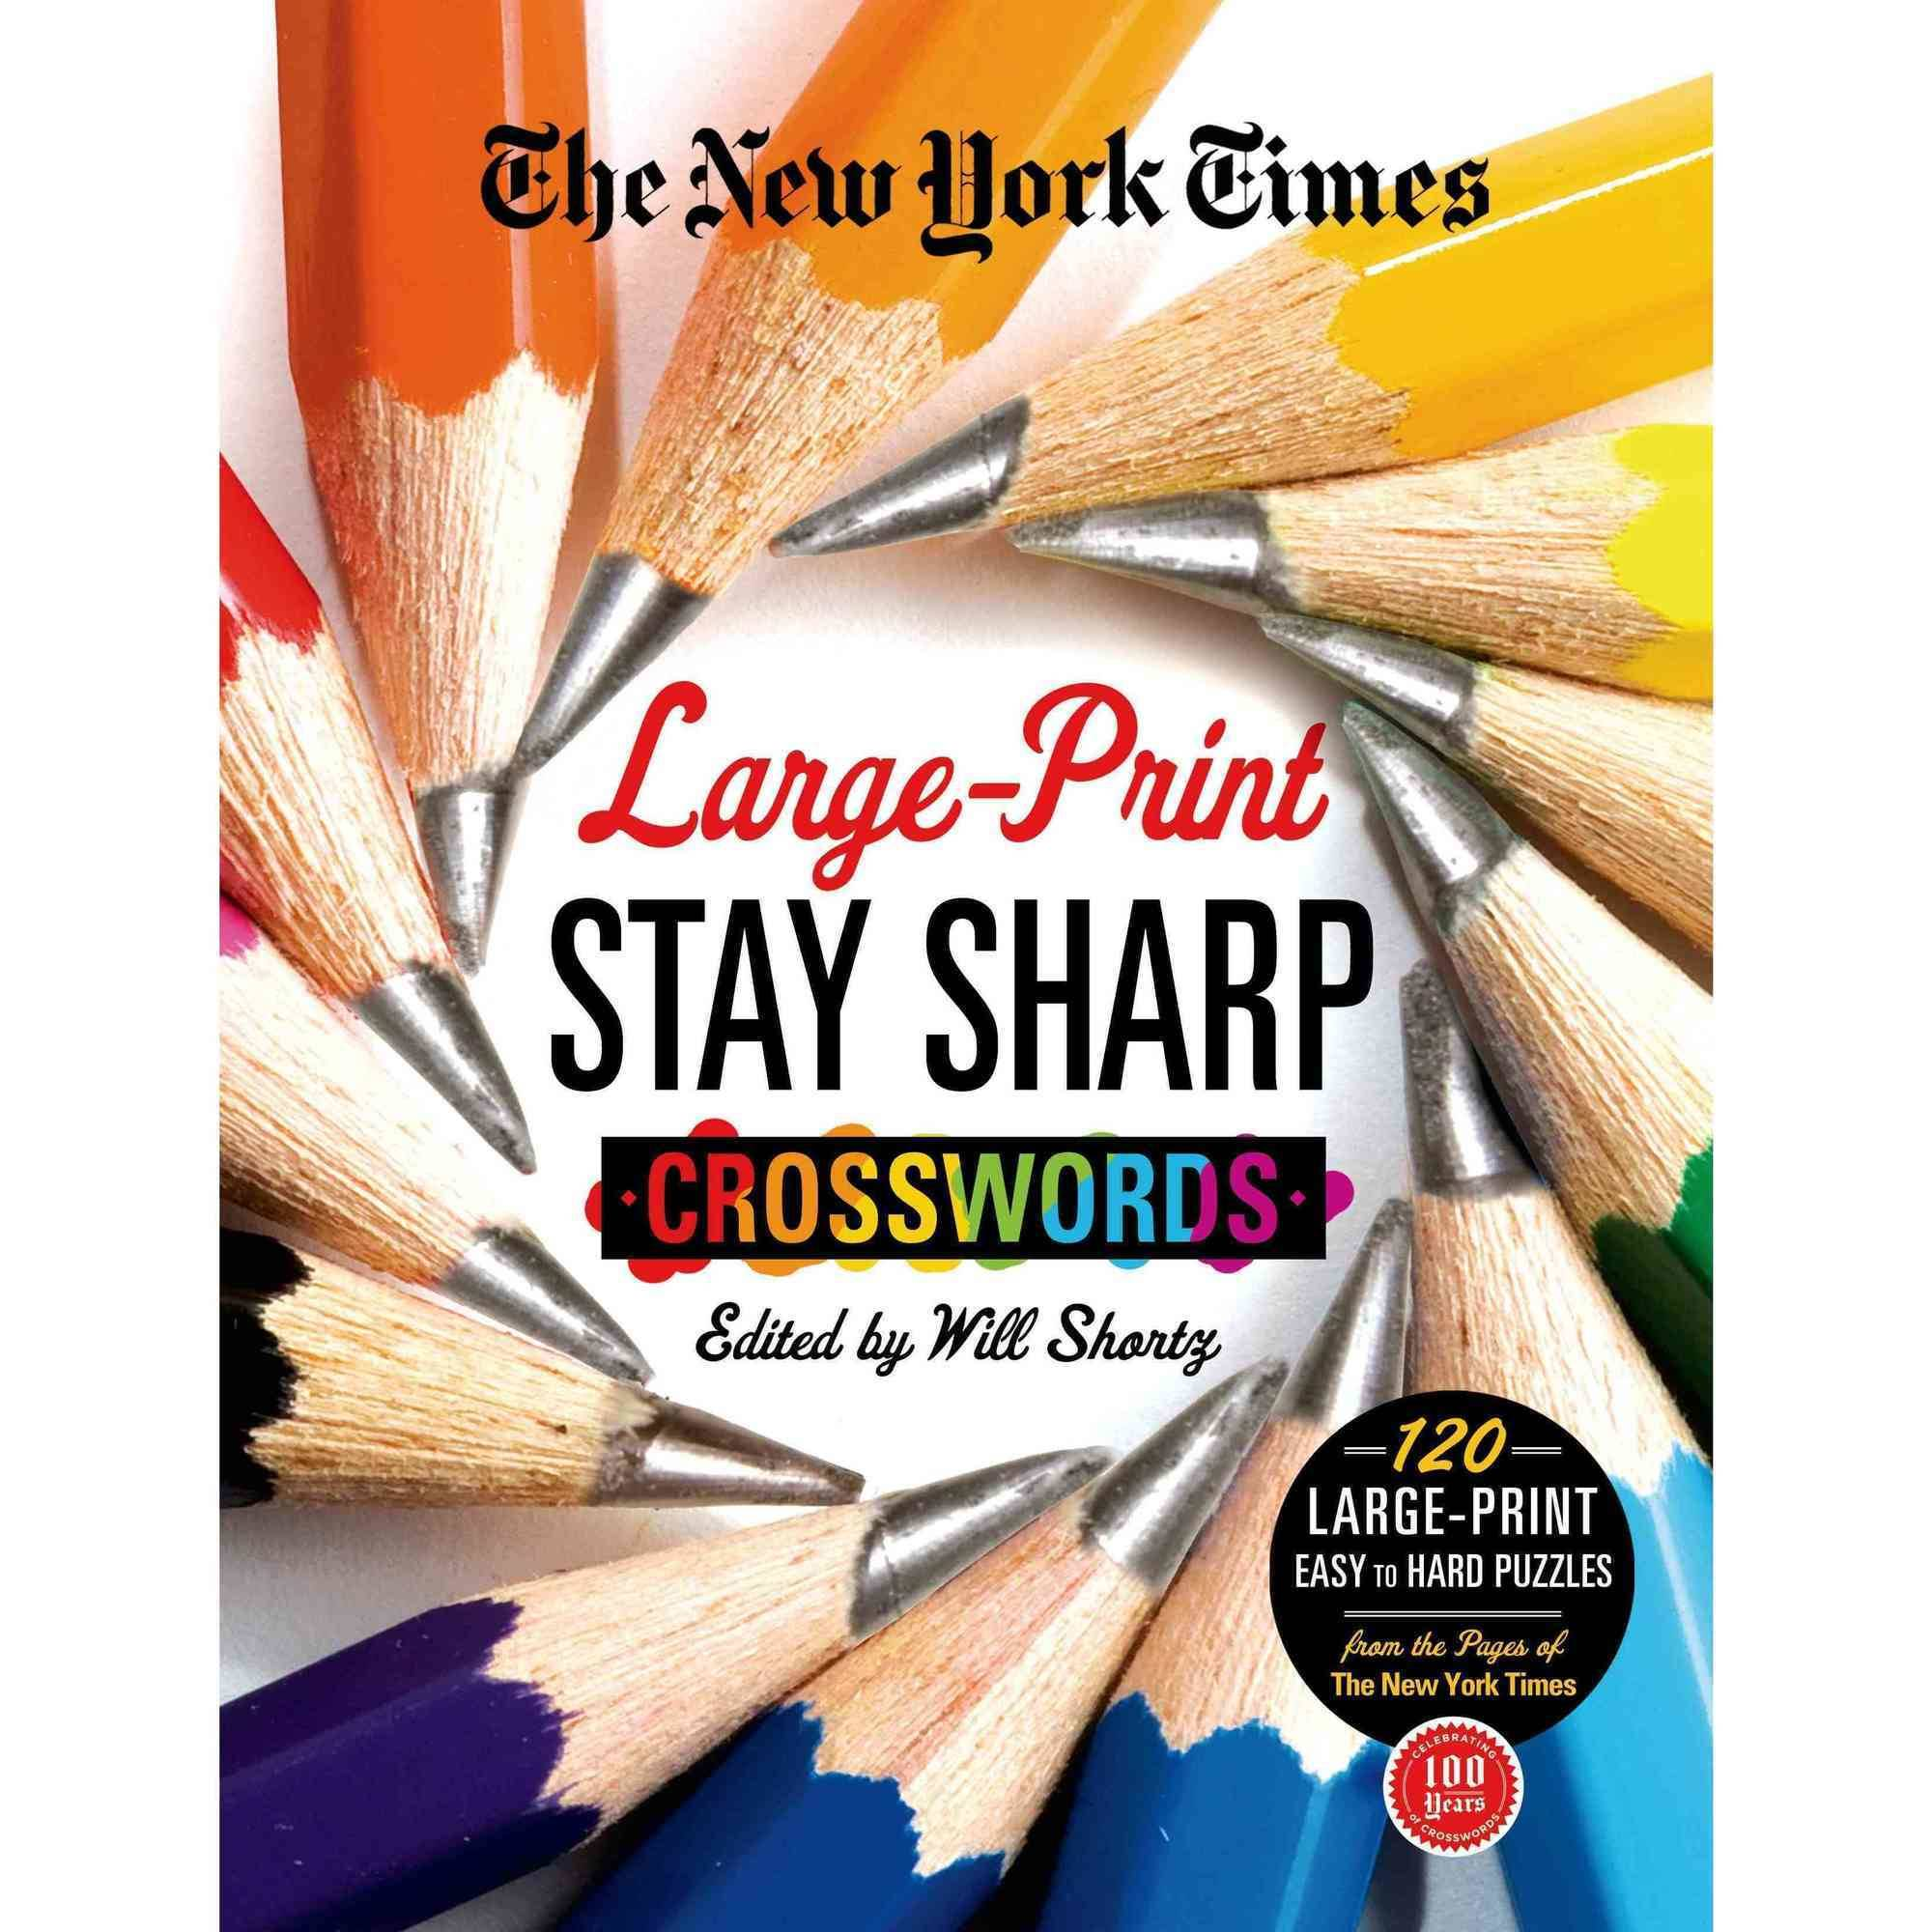 The New York Times Stay Sharp Crosswords: 120 Easy to Hard Puzzles from the Pages of the New York Times